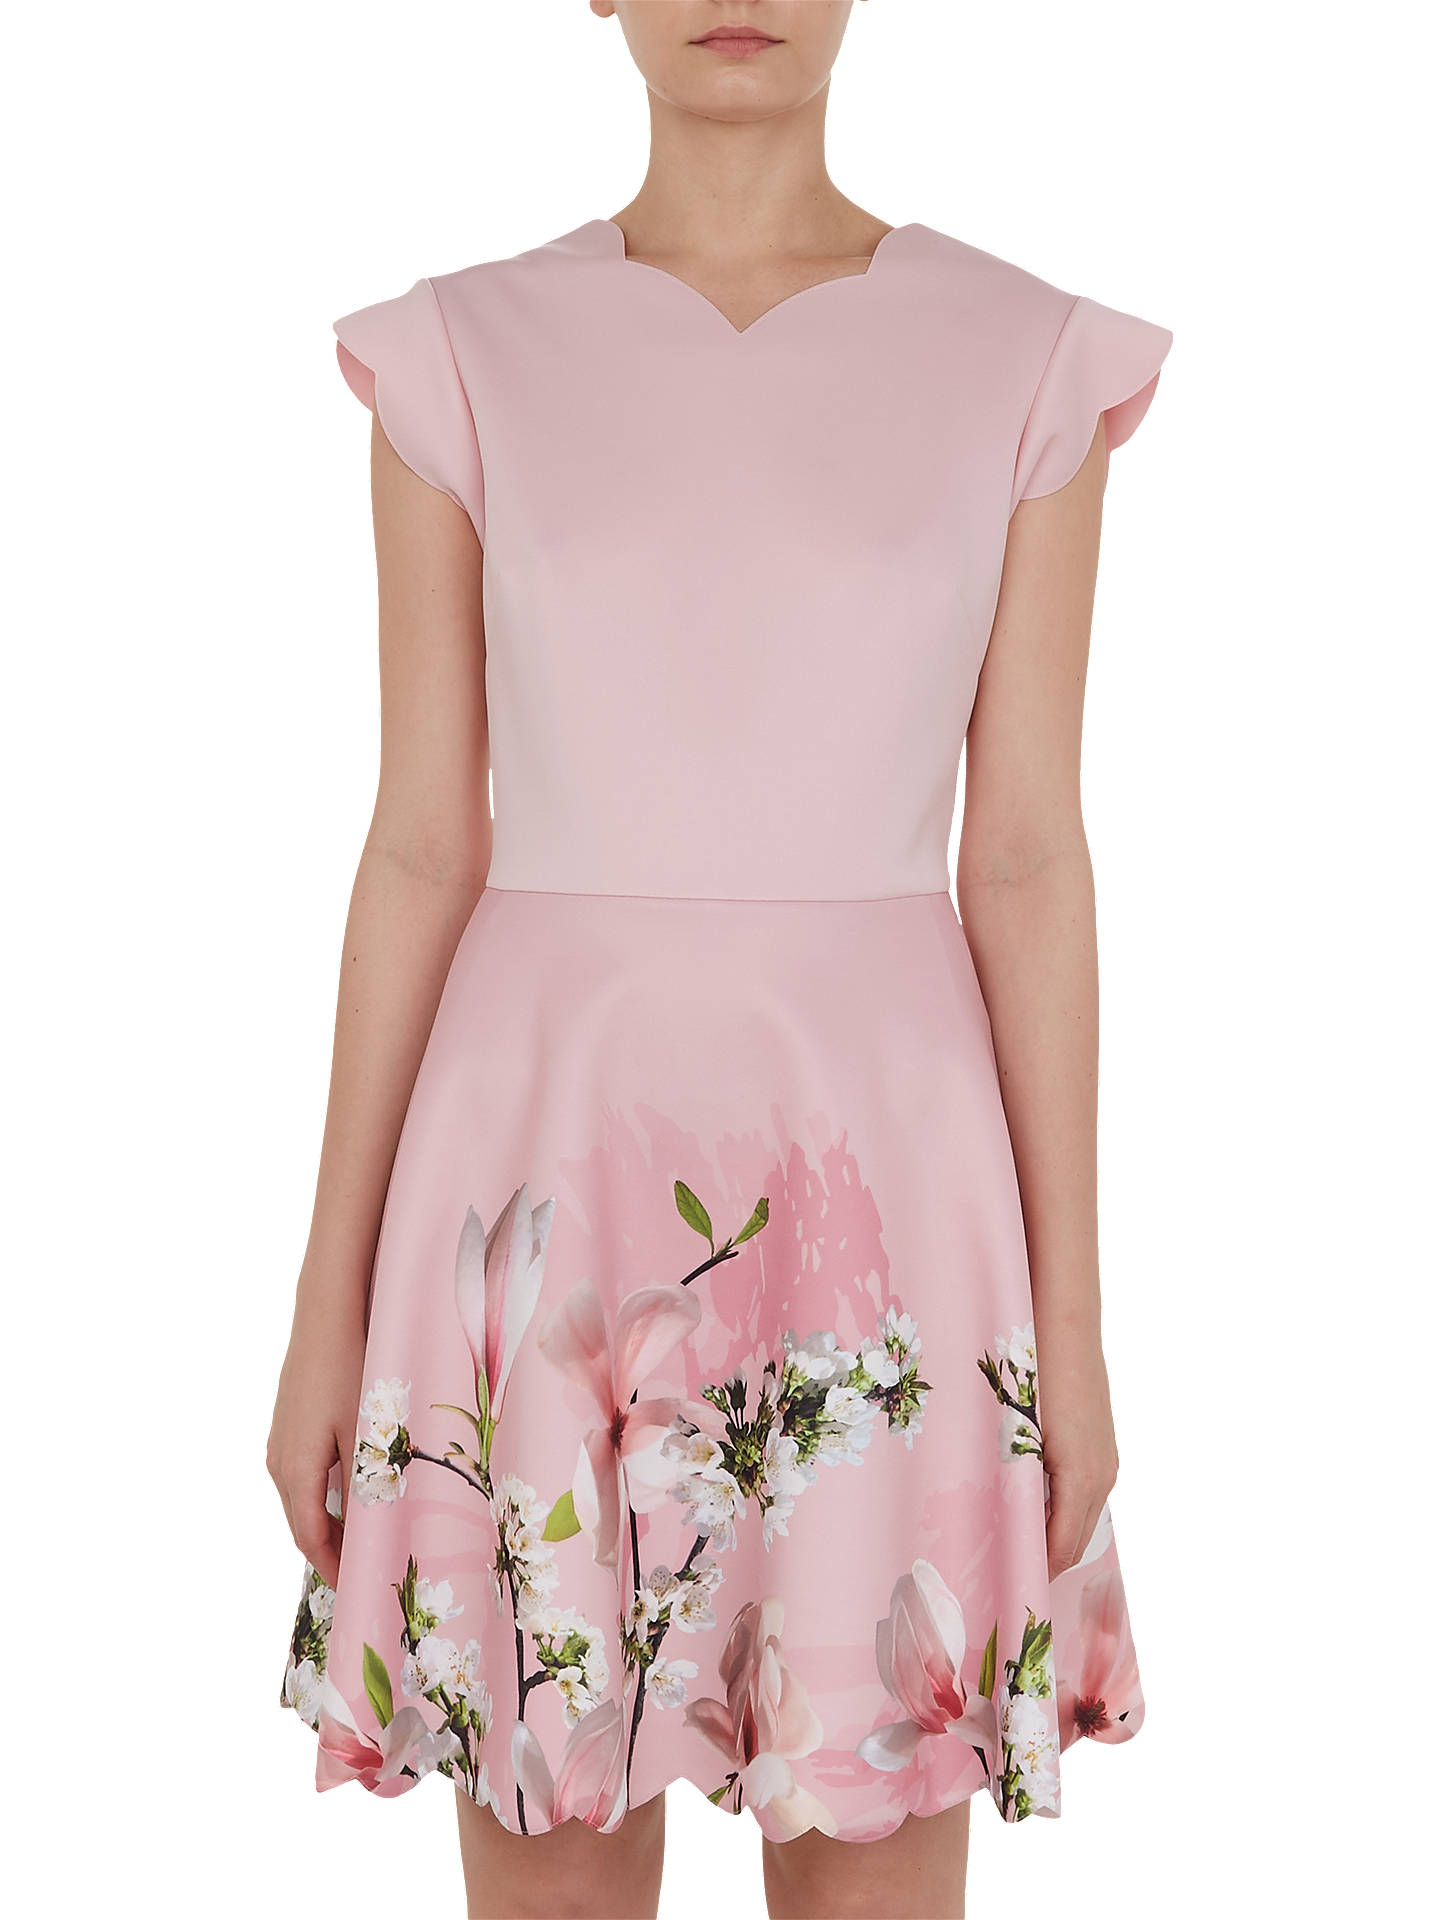 fecb61551 Ted Baker Grettae Harmony Skater Dress, Pale Pink at John Lewis ...